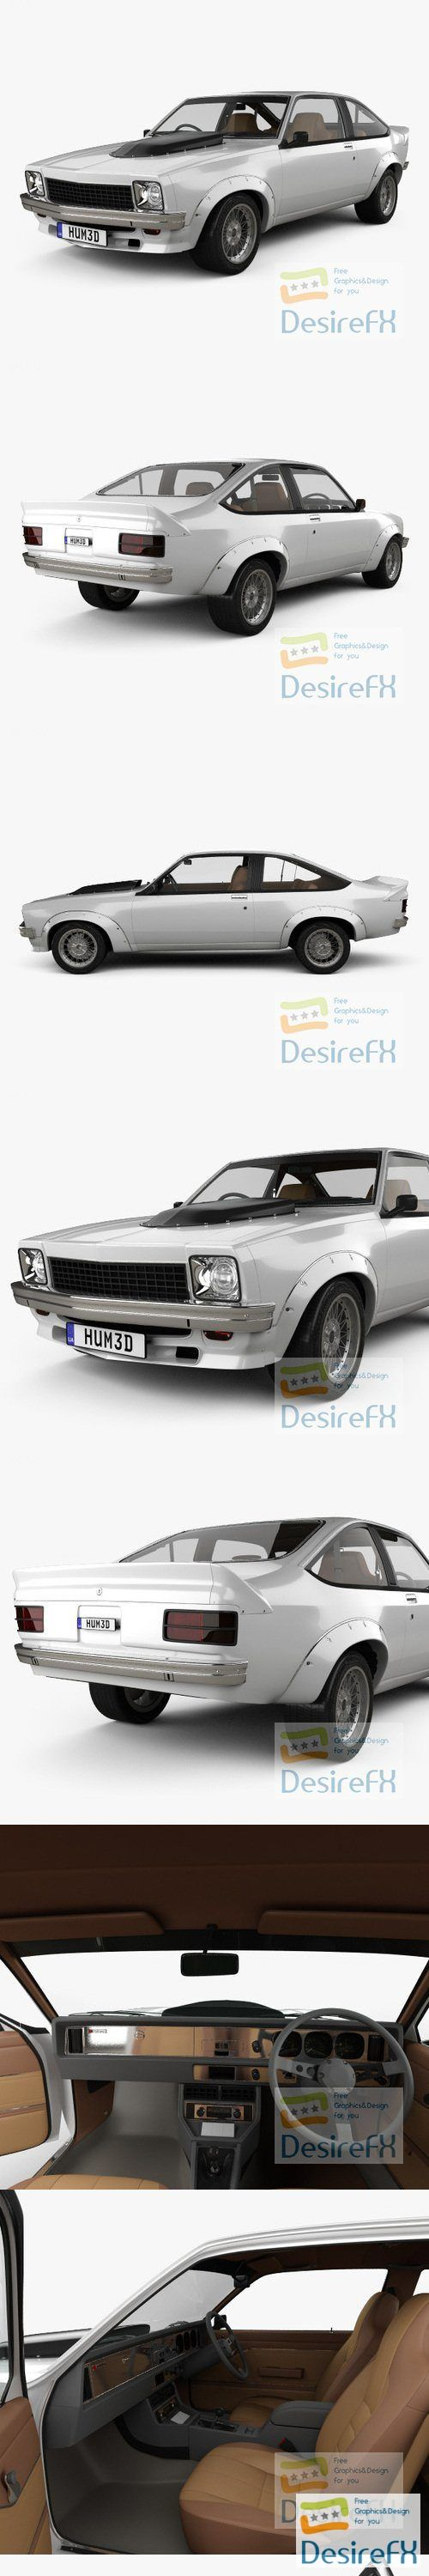 Holden Torana with HQ interior 1977 3D Model